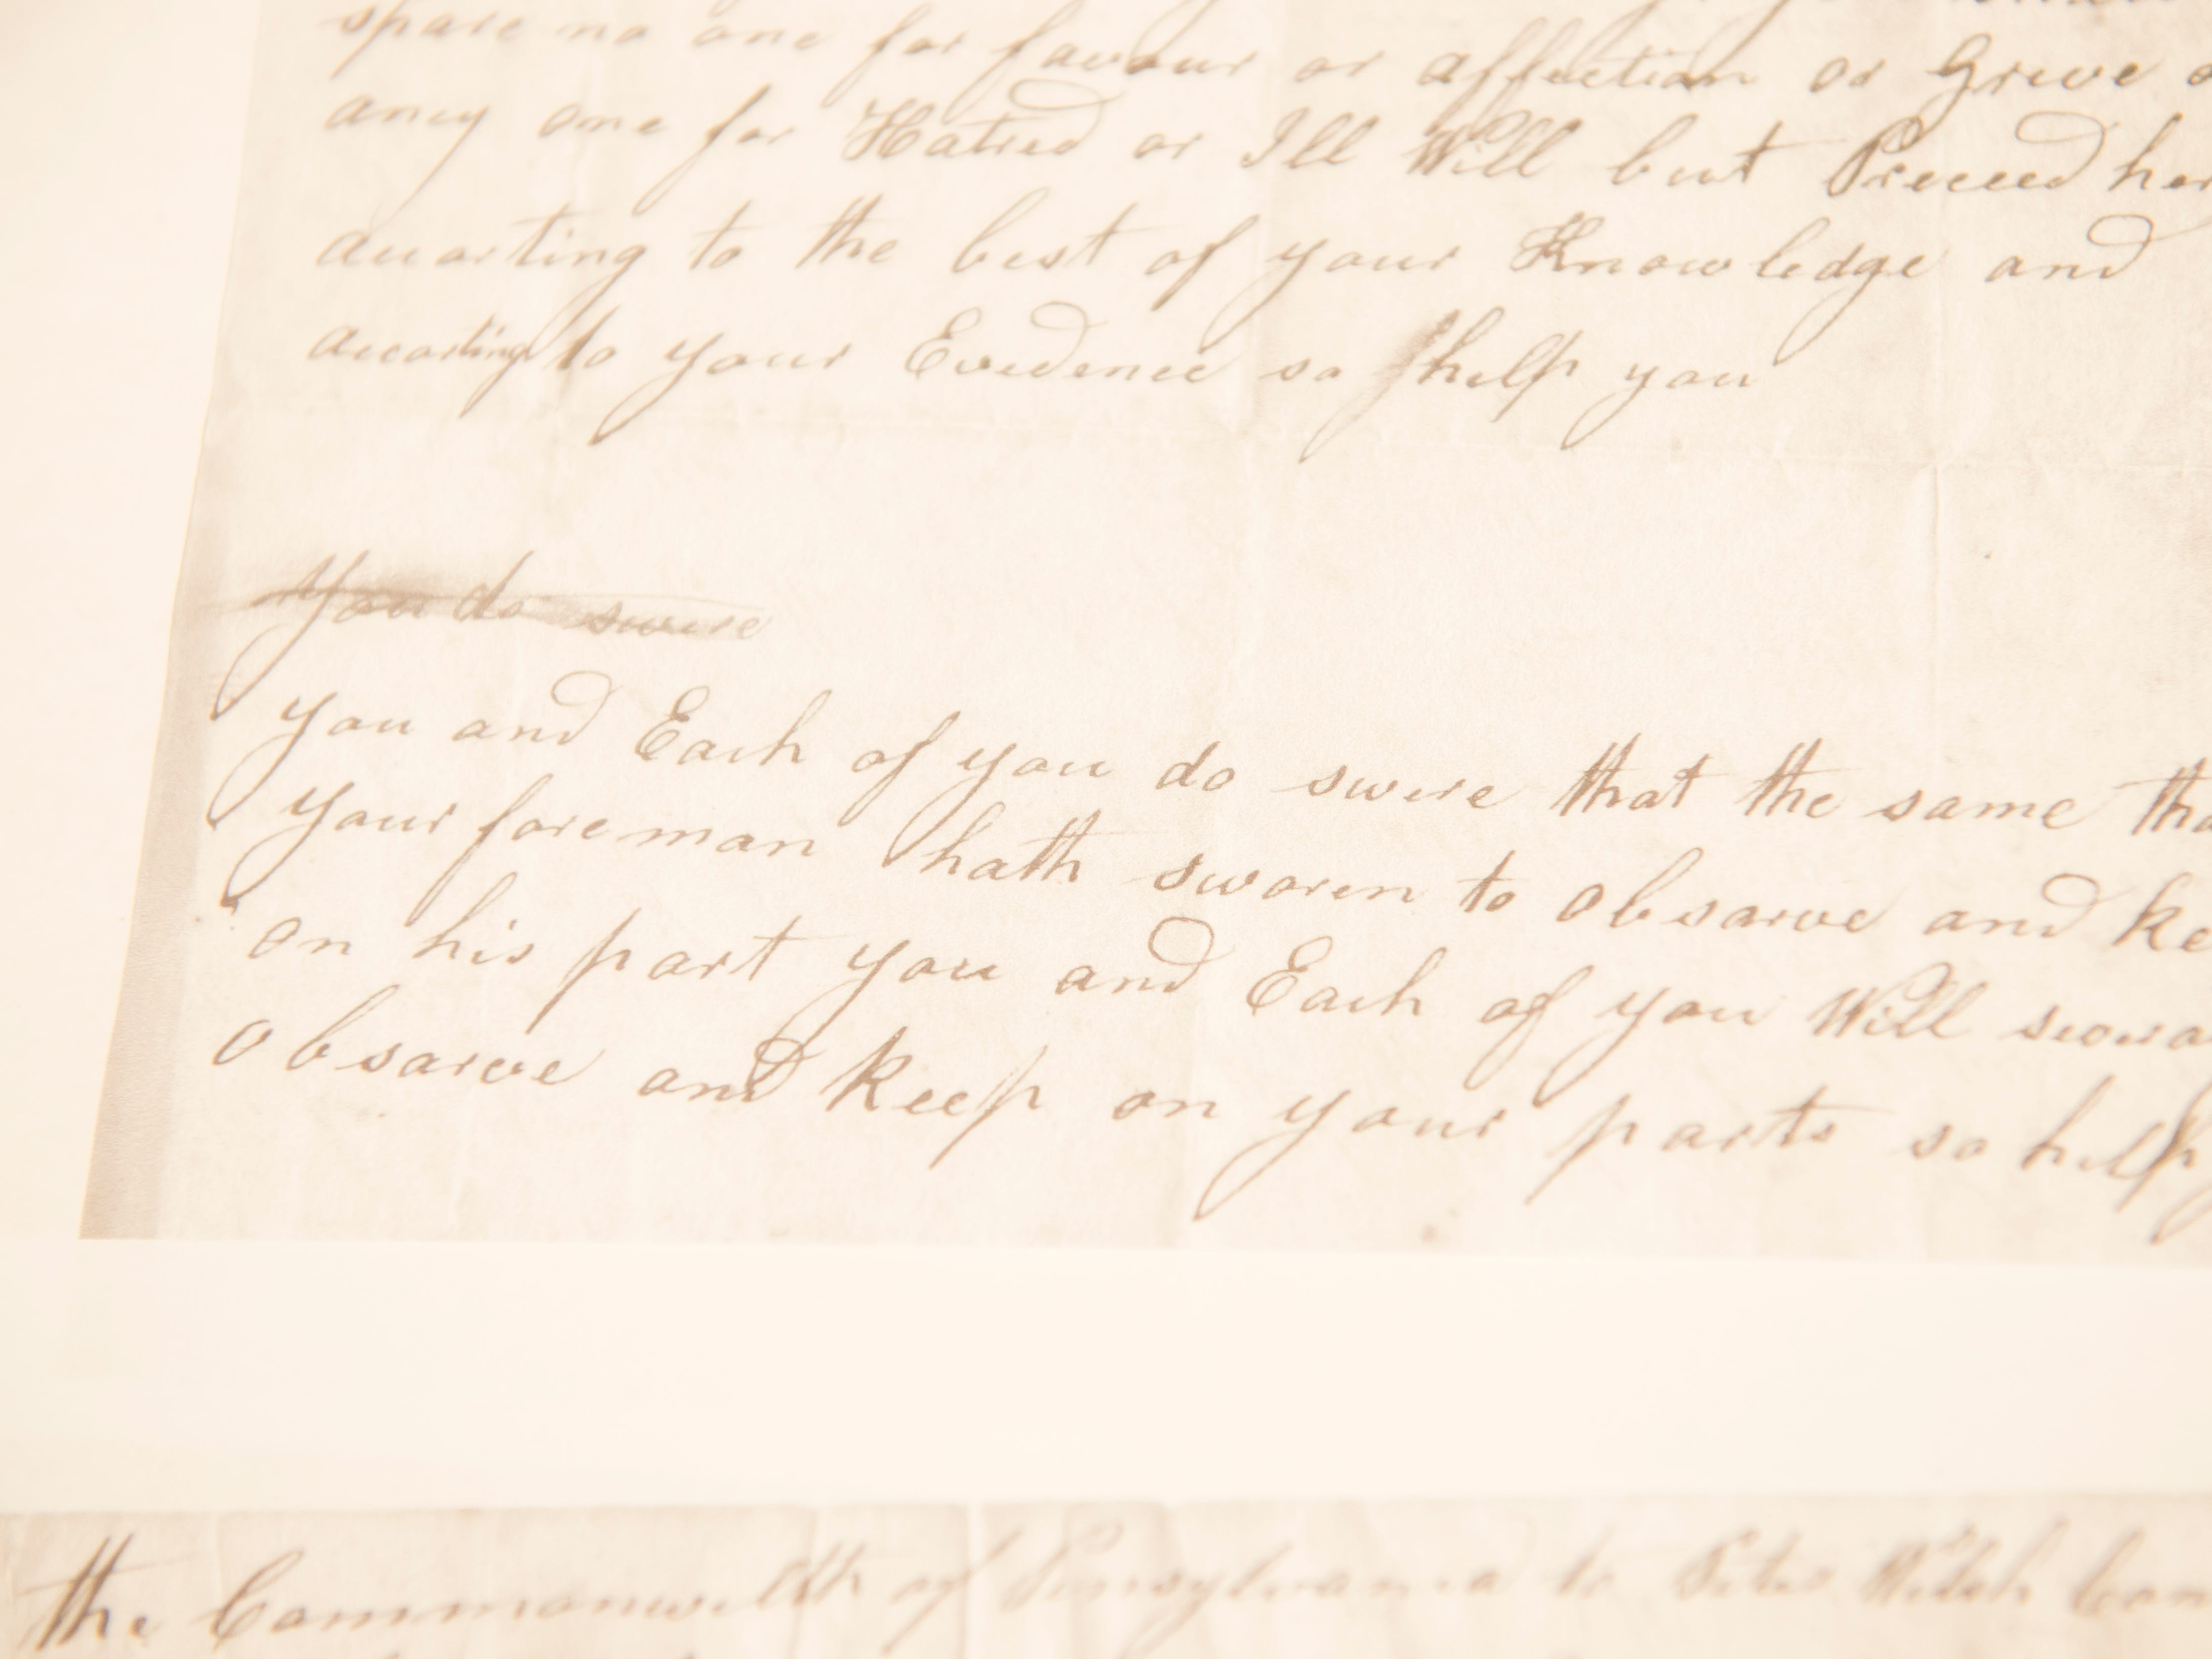 A copy of a court issued, hand-written subpoena for a Magdelinia Kitchen, one of four people who lived in a home on York Street where a girl's body was found in 1801. Kitchen was found not guilty.